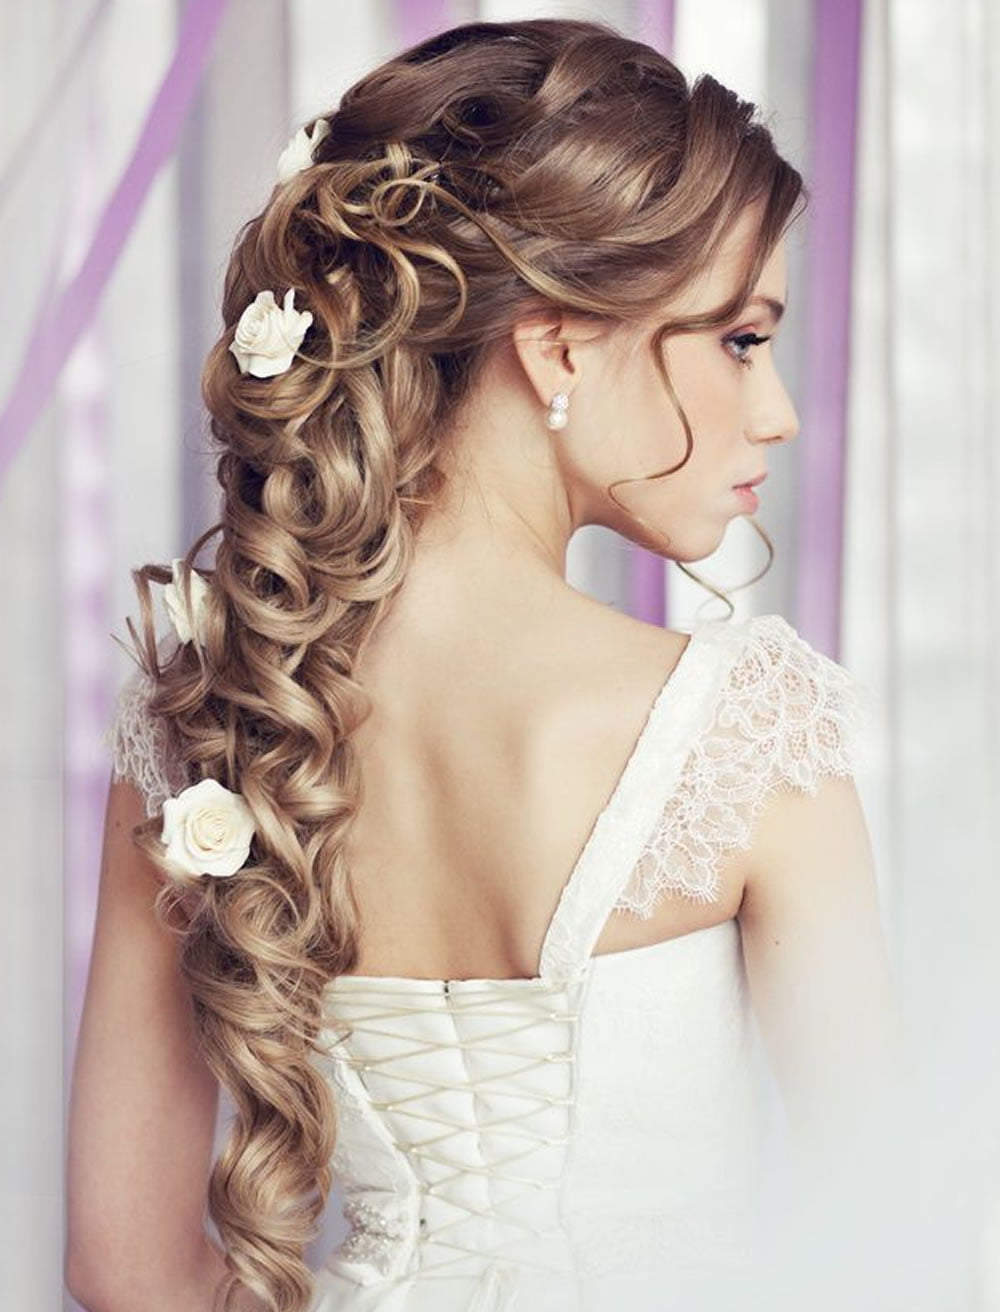 very stylish wedding hairstyles for long hair 2018 2019 page 4 hairstyles. Black Bedroom Furniture Sets. Home Design Ideas